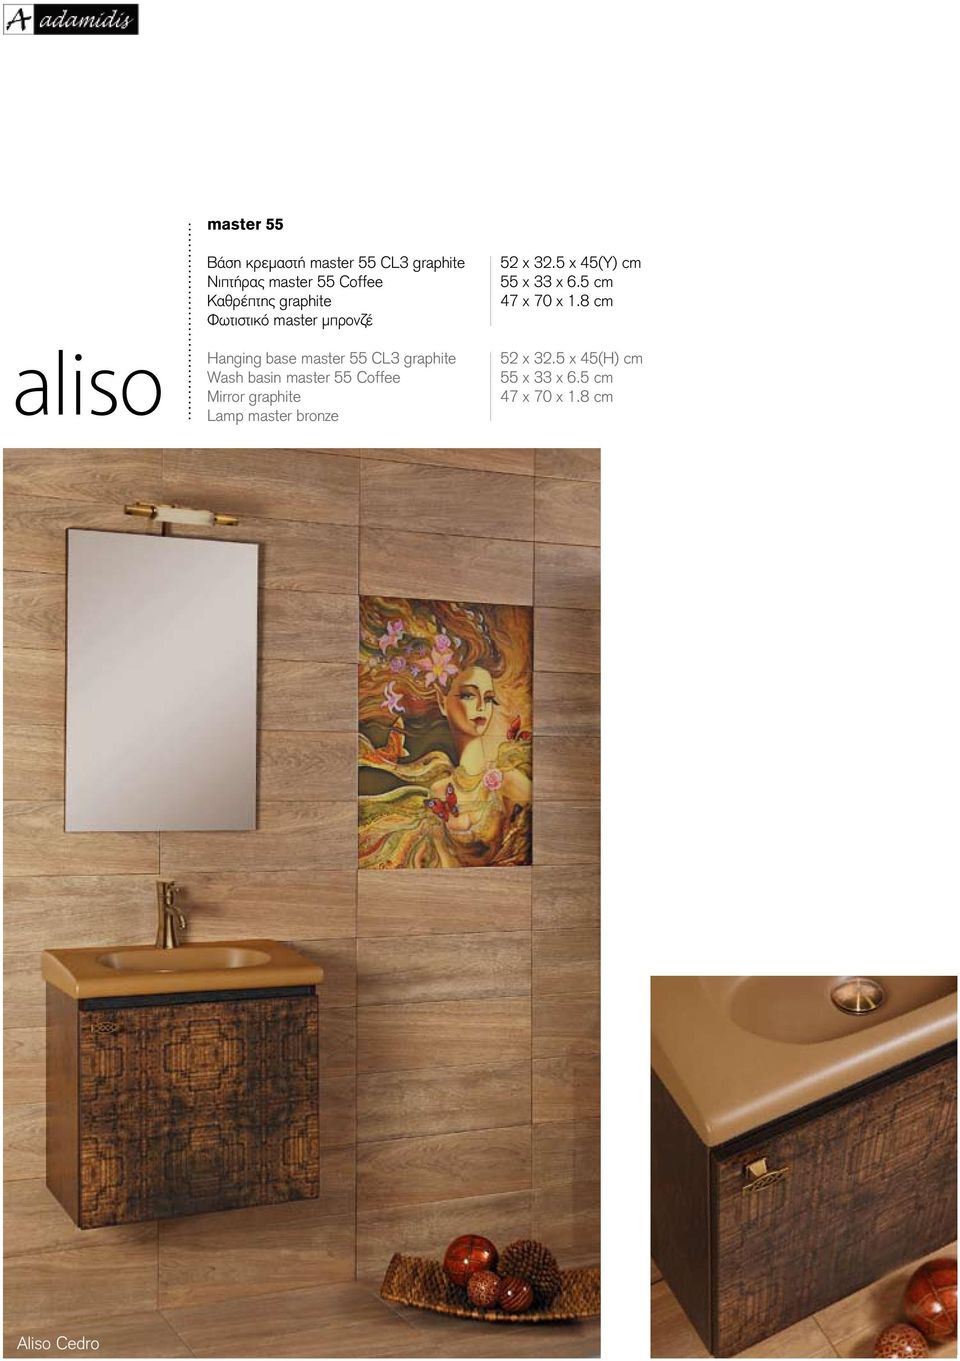 basin master 55 Coffee Mirror graphite Lamp master bronze 52 χ 32.